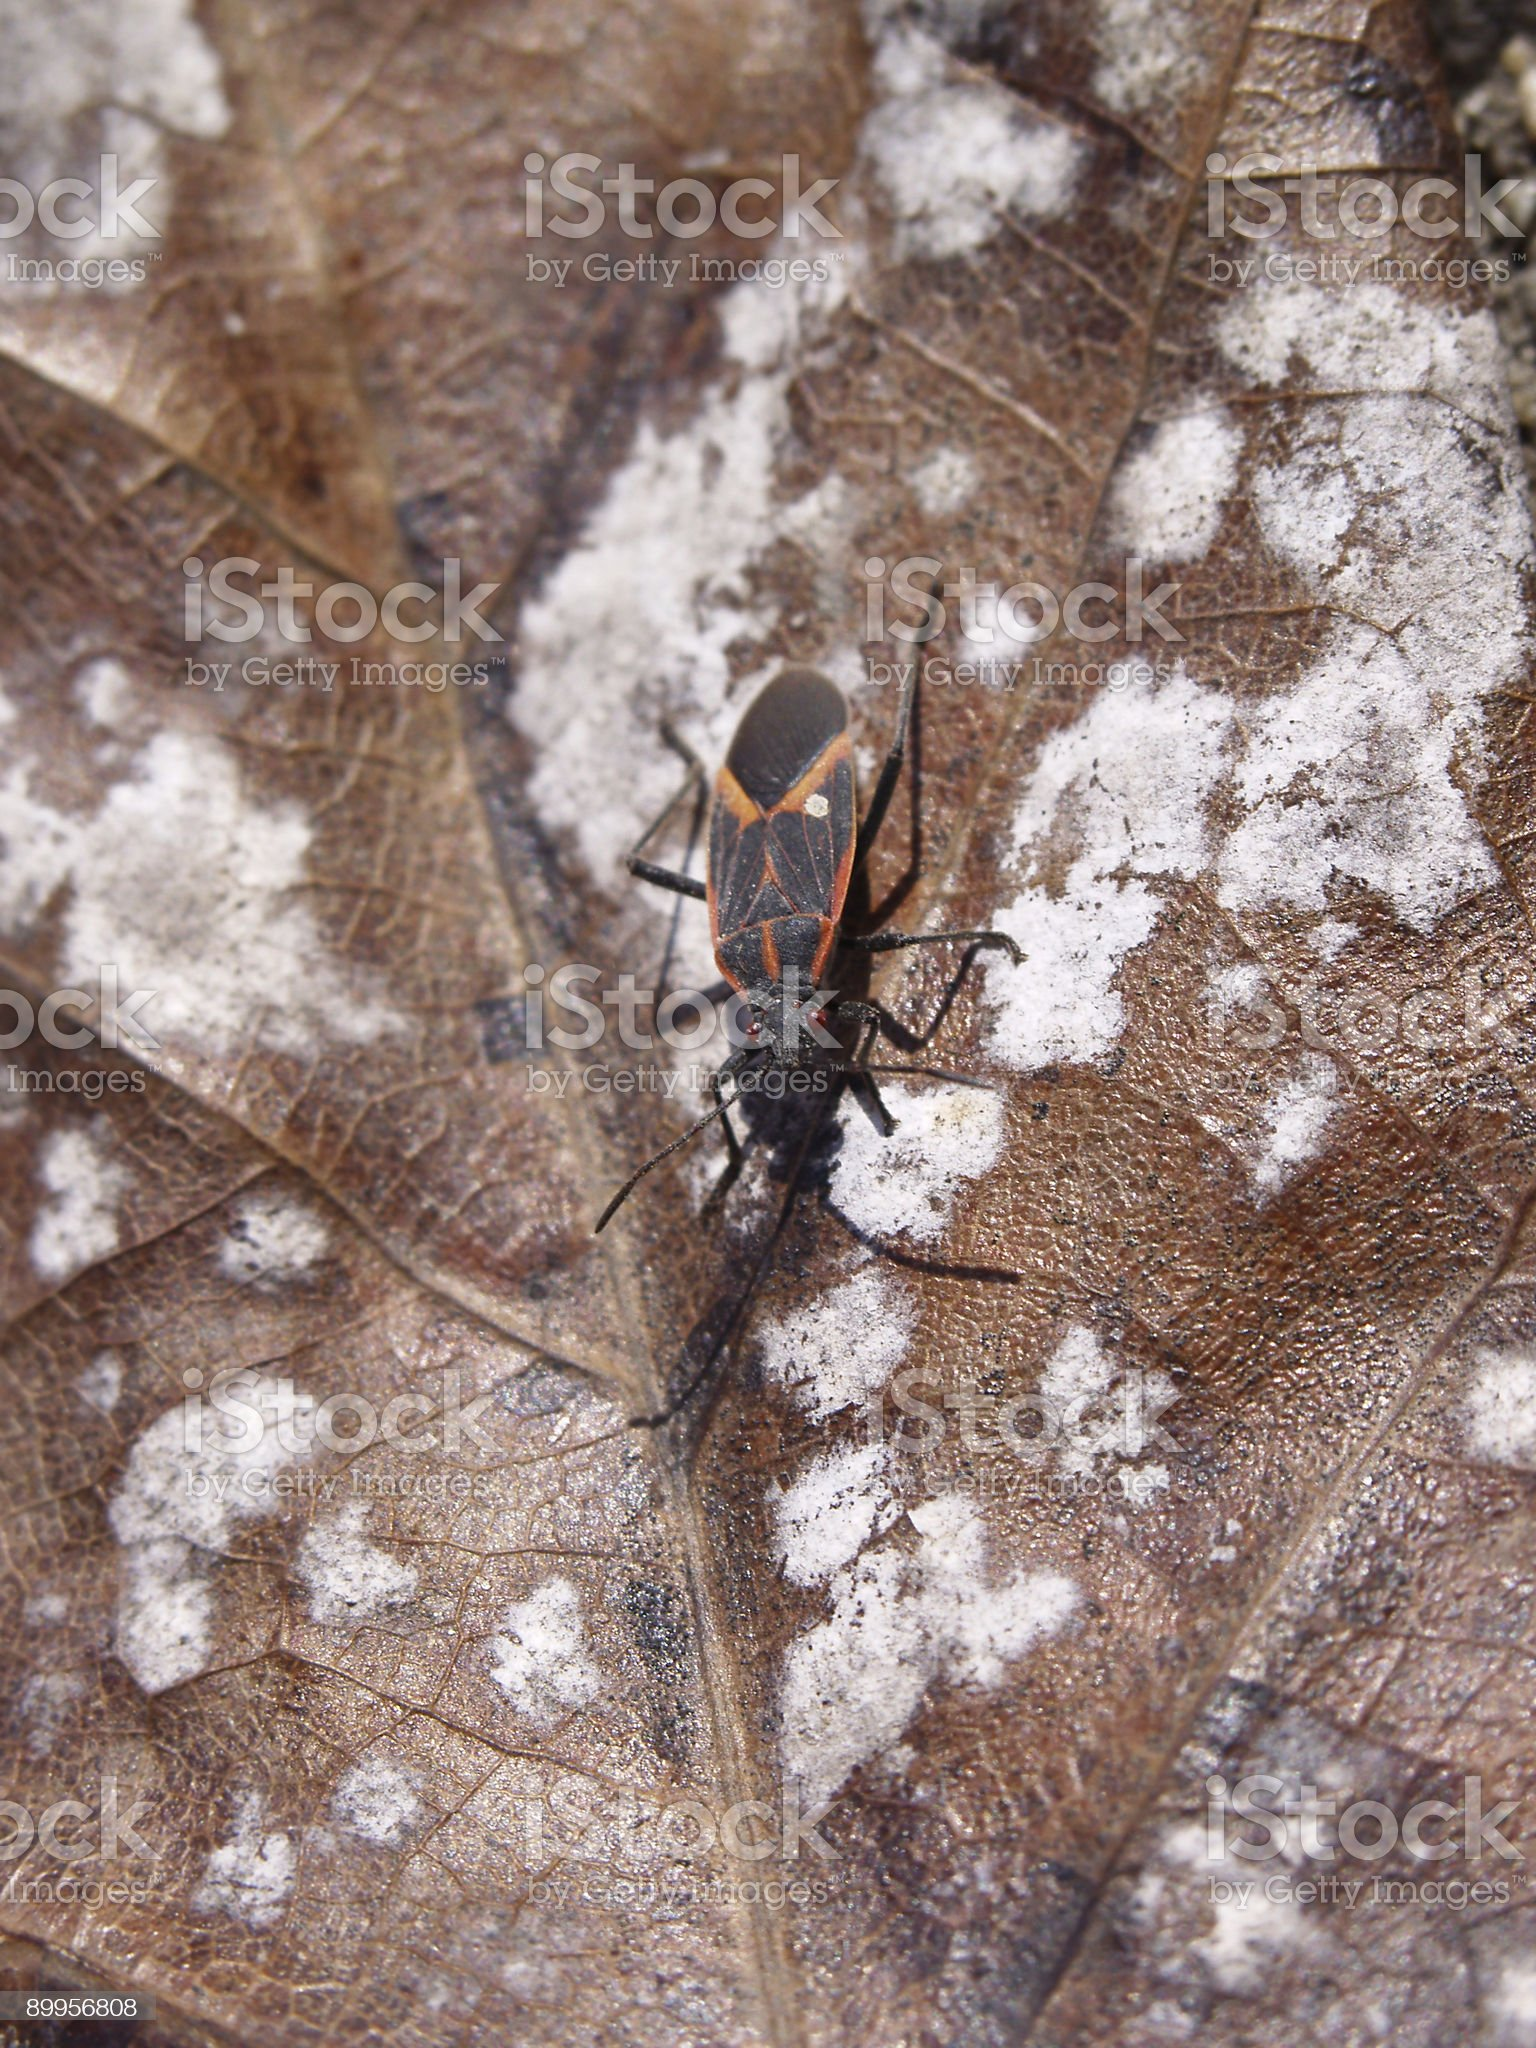 Insect - Box Elder Bug royalty-free stock photo